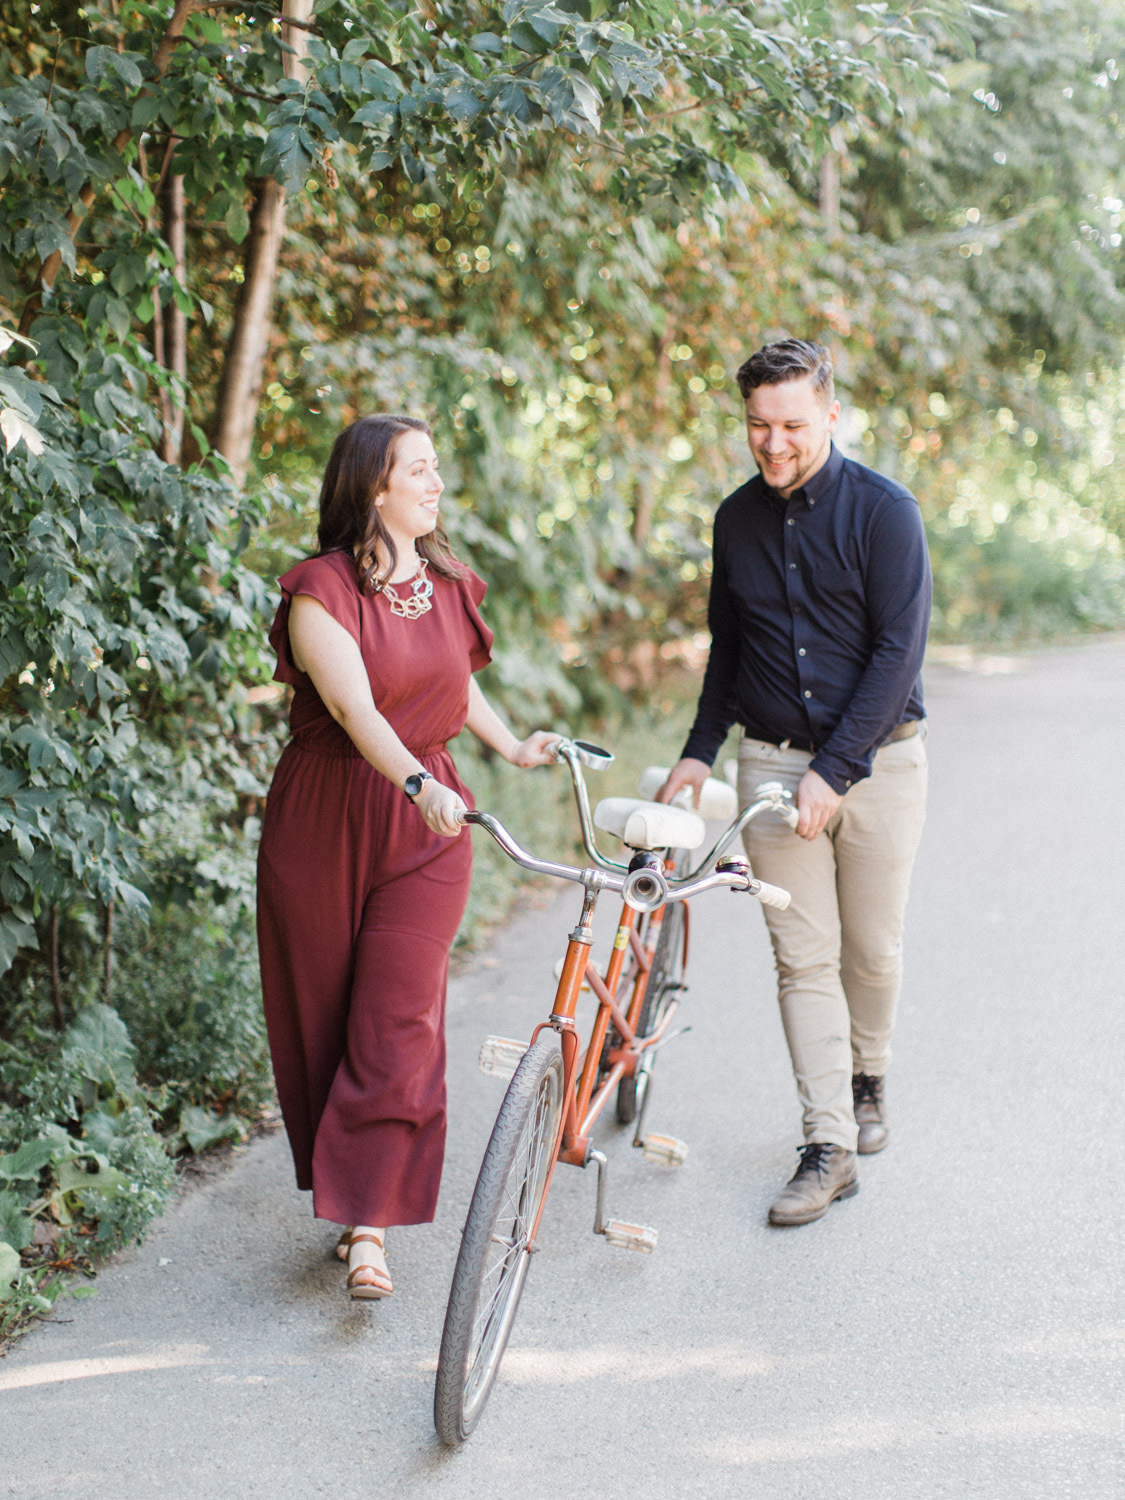 sunrise engagement session at Trinity Bellwoods park with a tandem bicycle